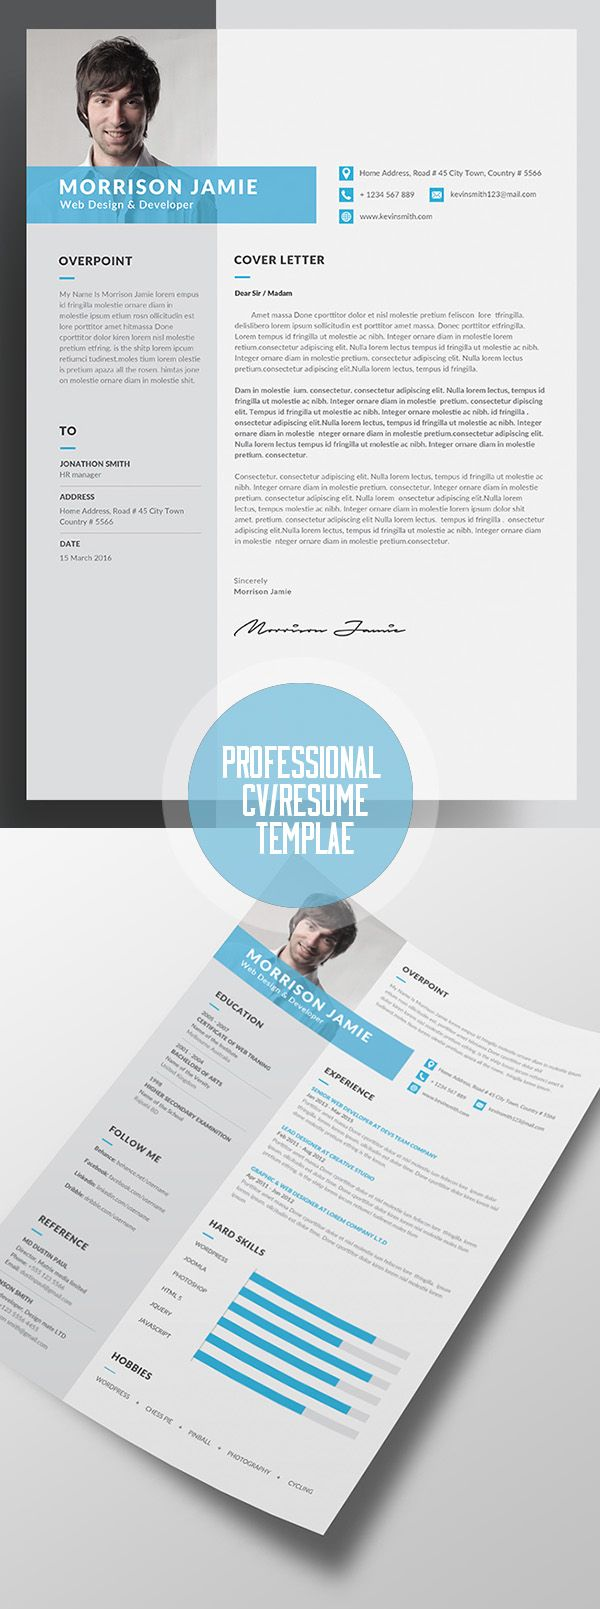 231 best HR images on Pinterest | Resume design, Resume templates ...